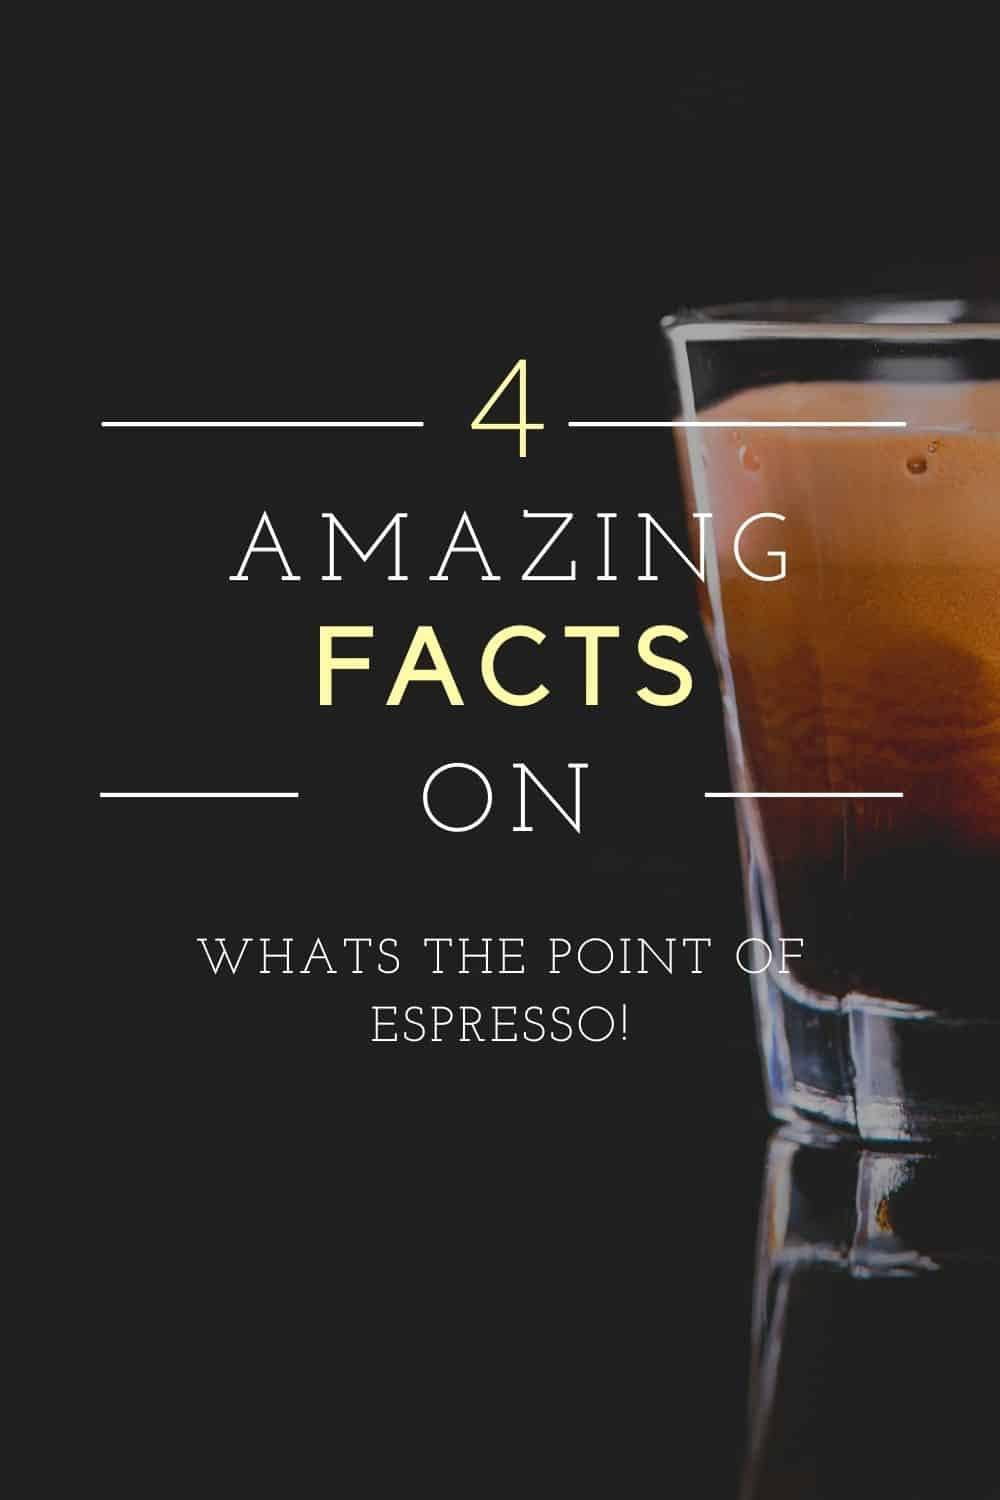 WHATS THE POINT OF ESPRESSO (1)